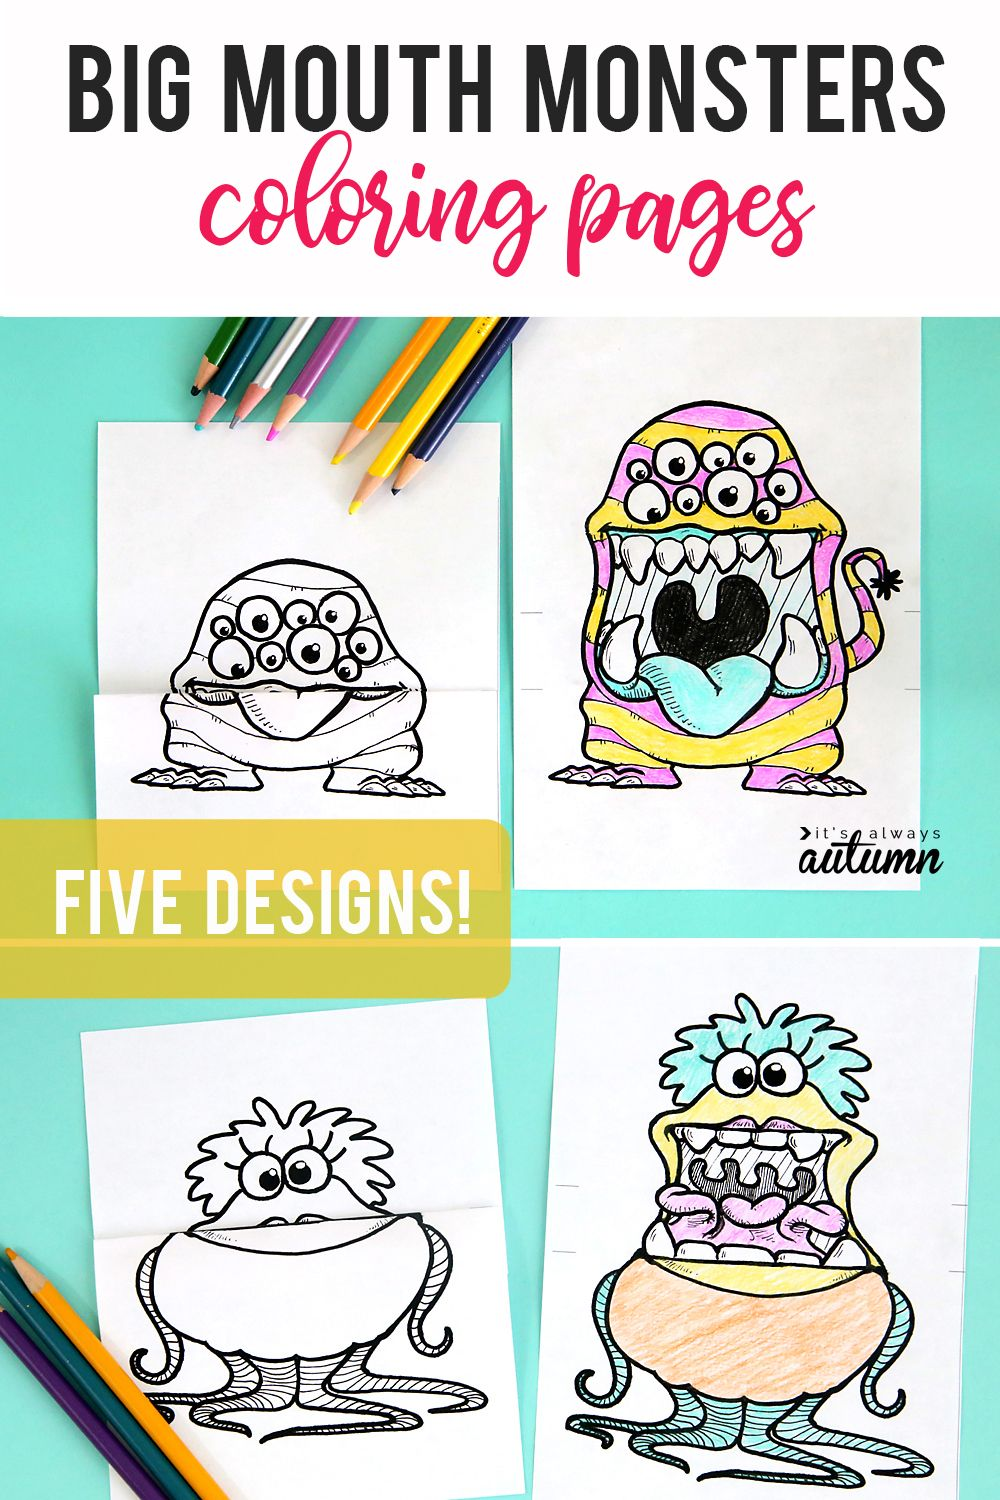 Surprise Big Mouth Fish Printable Bible Crafts Art And Craft Videos Big Mouth